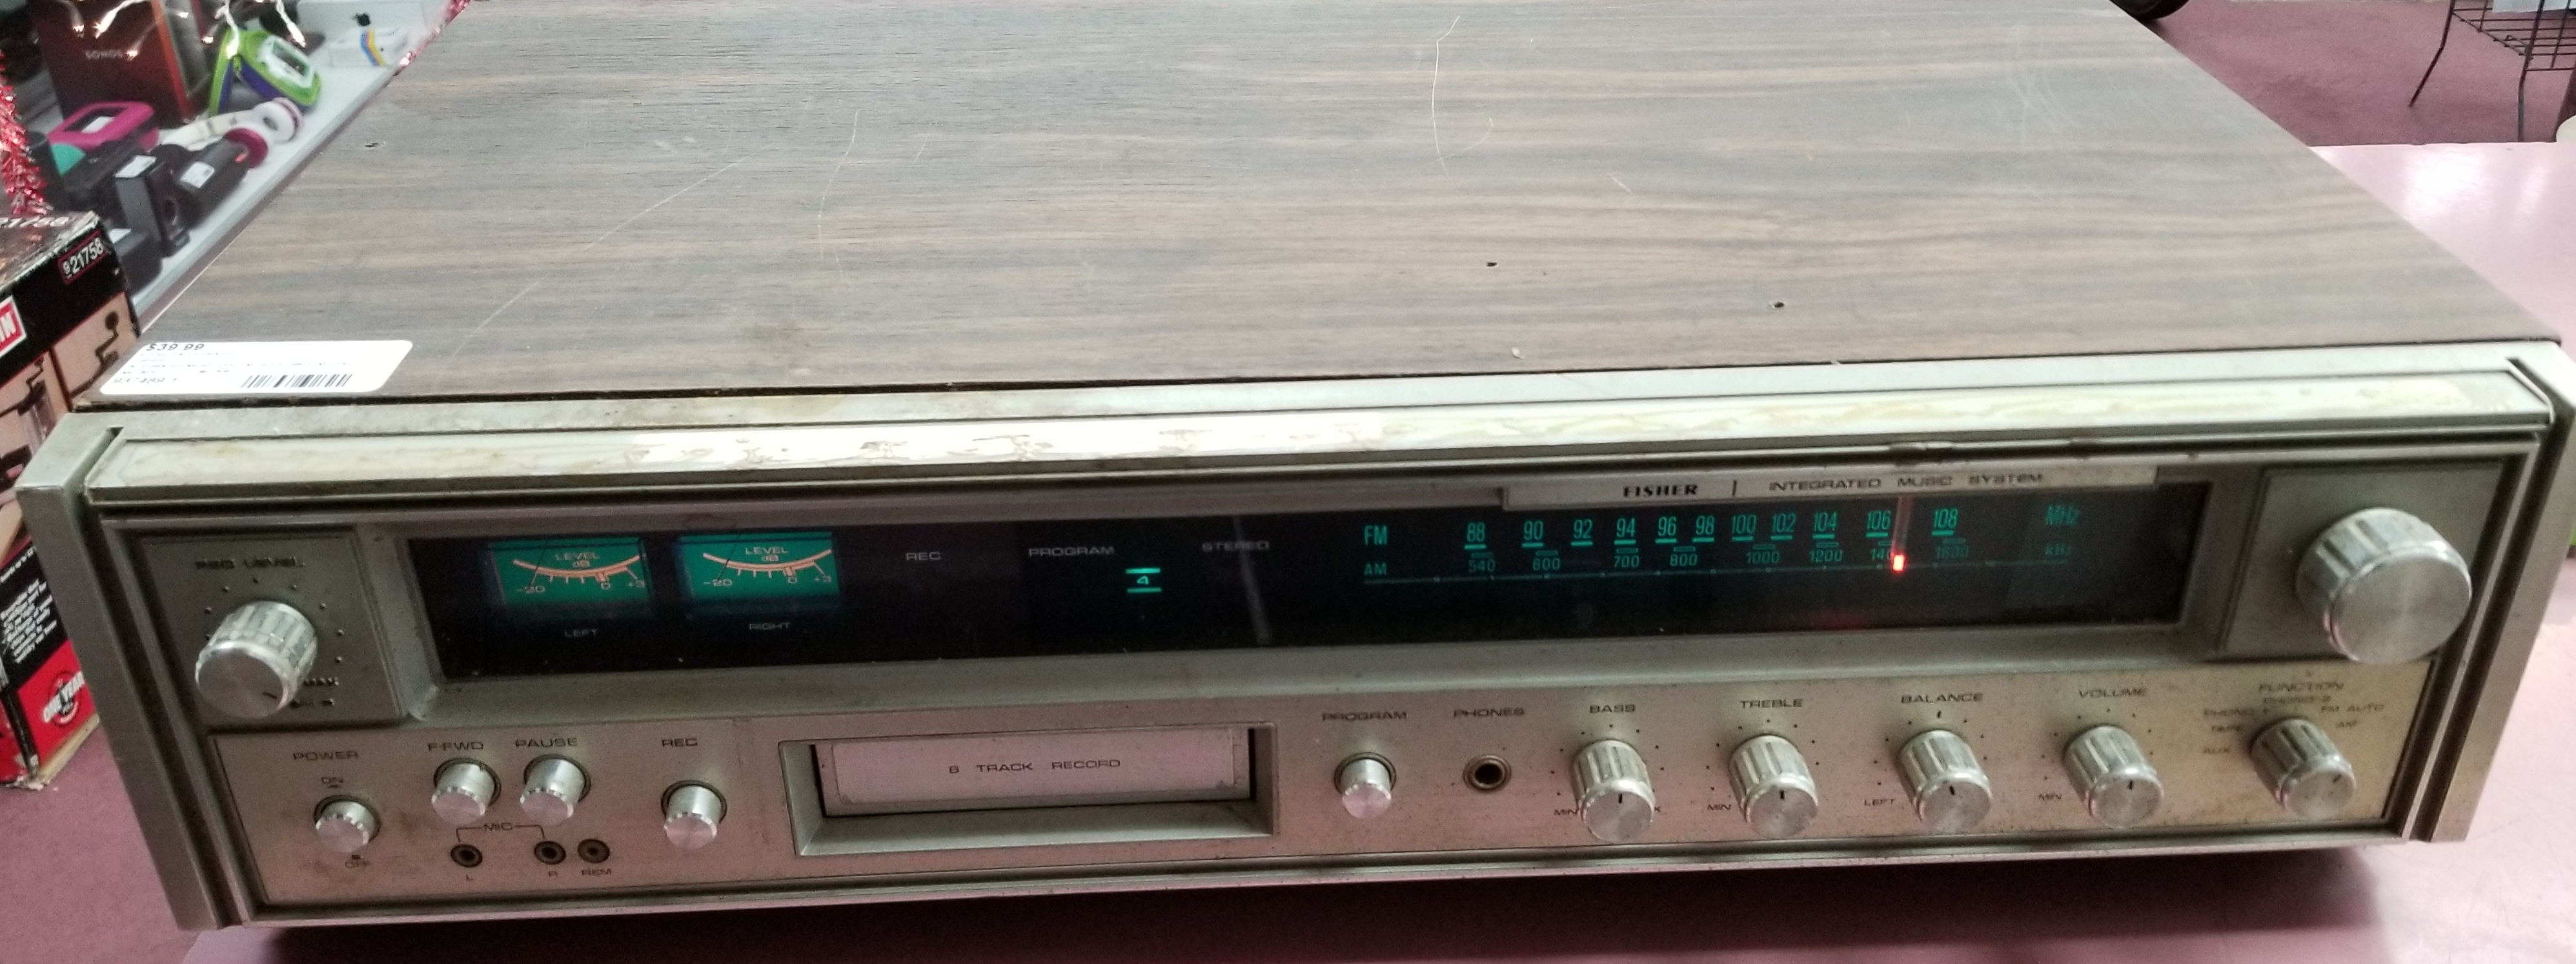 FISHER MC3010 INTEGRATED MUSIC SYSTEM 70S-80S